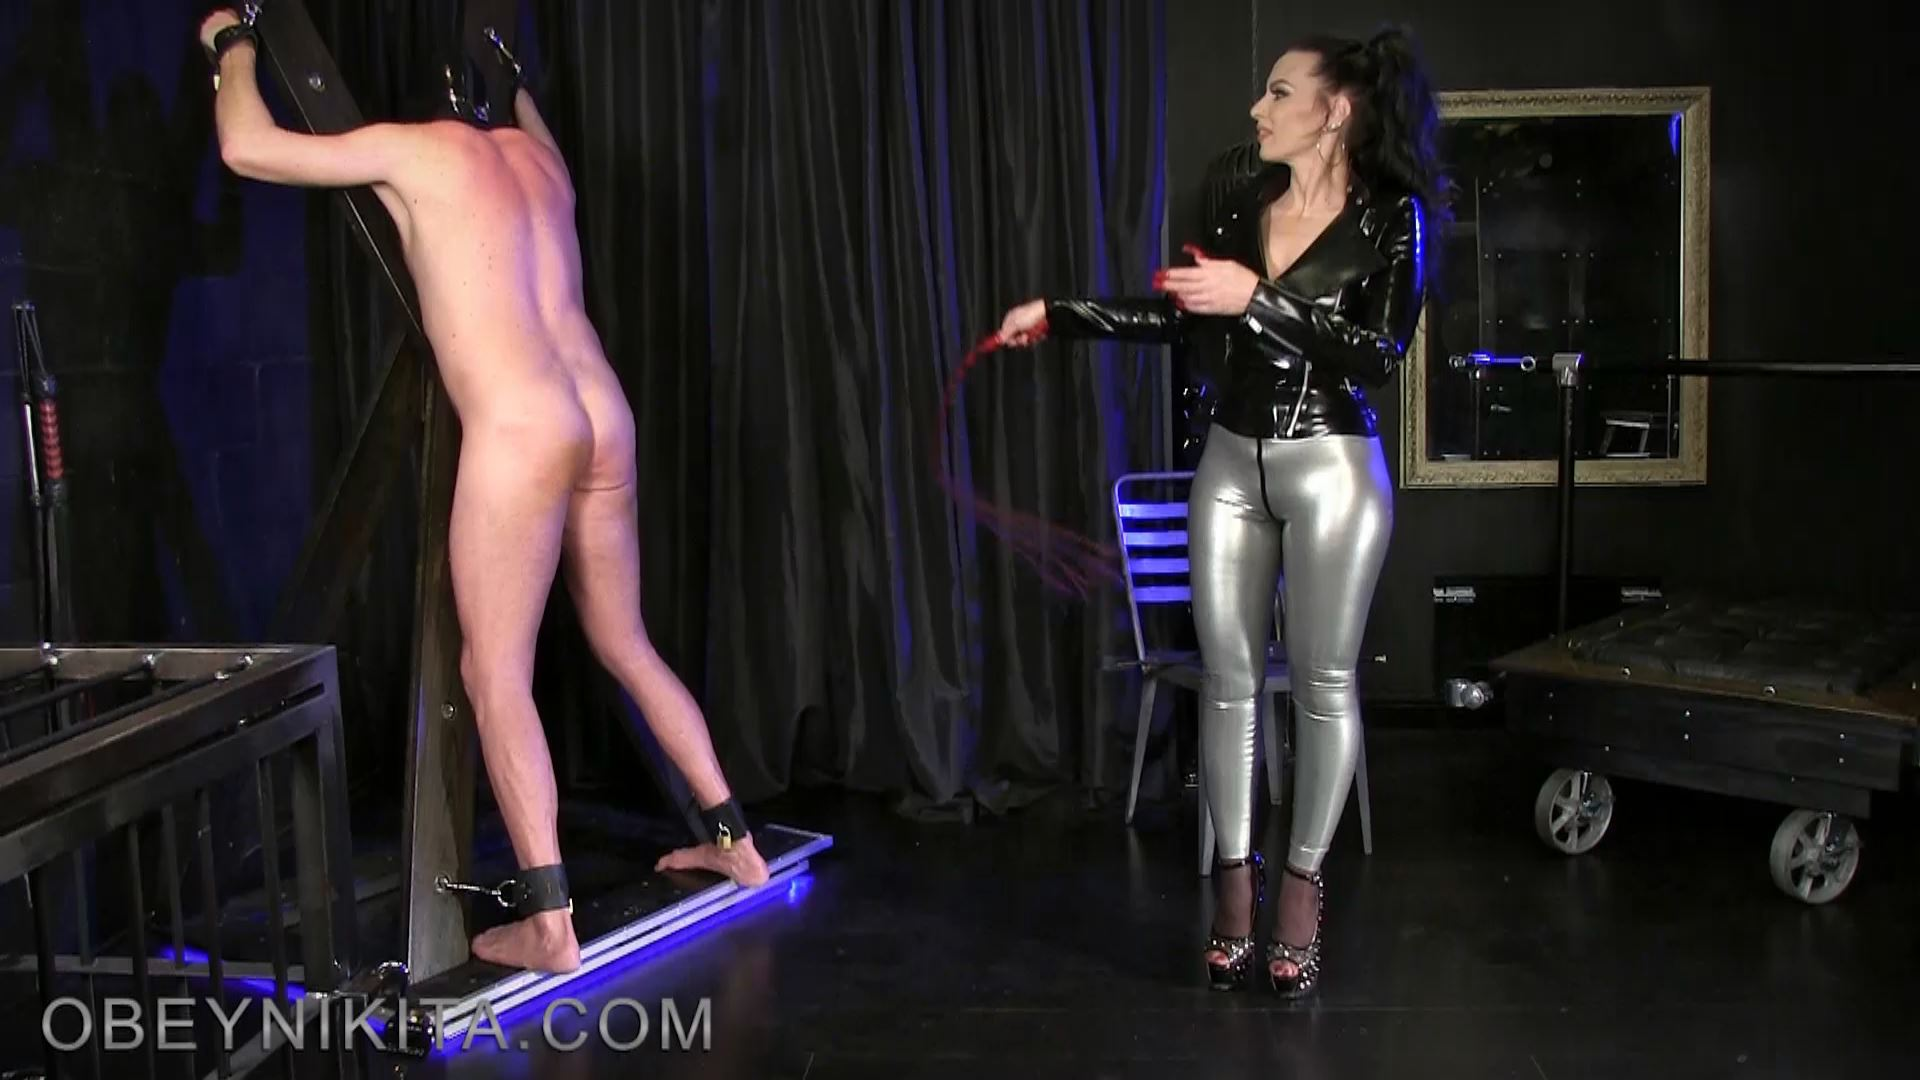 PUSSY BOI GETS PUNISHED. FEATURING: MISTRESS NIKITA - OBEYNIKITA - FULL HD/1080p/MP4